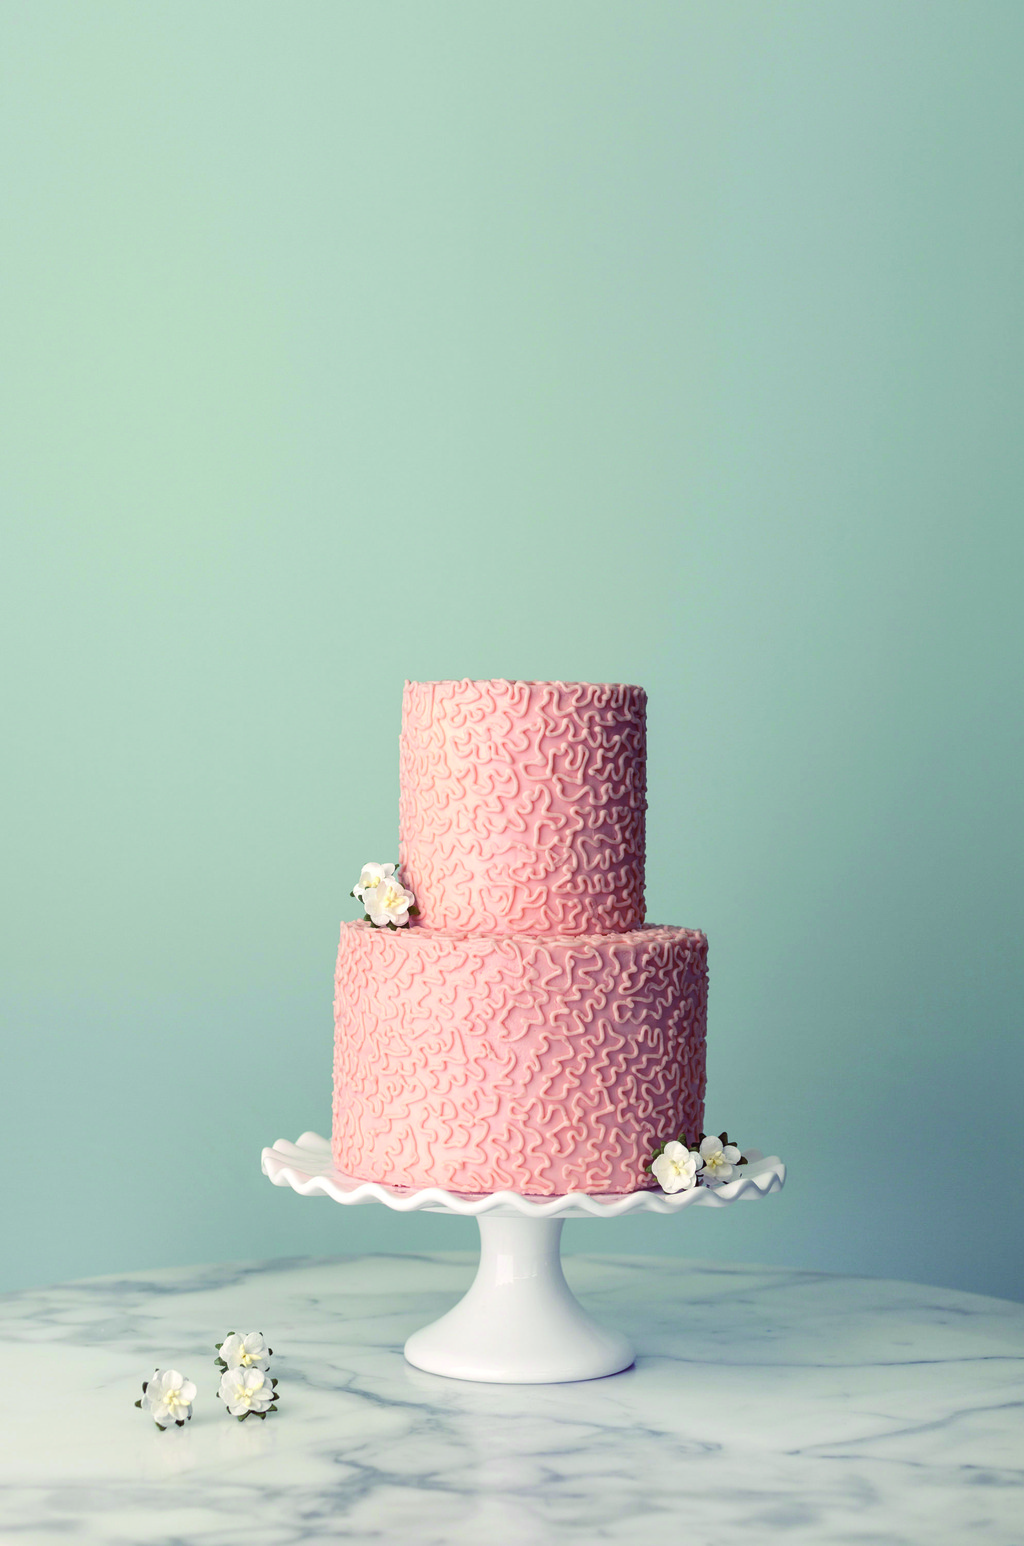 Two Tiered Wedding Cake From Magnolia Bakery Full Jpg